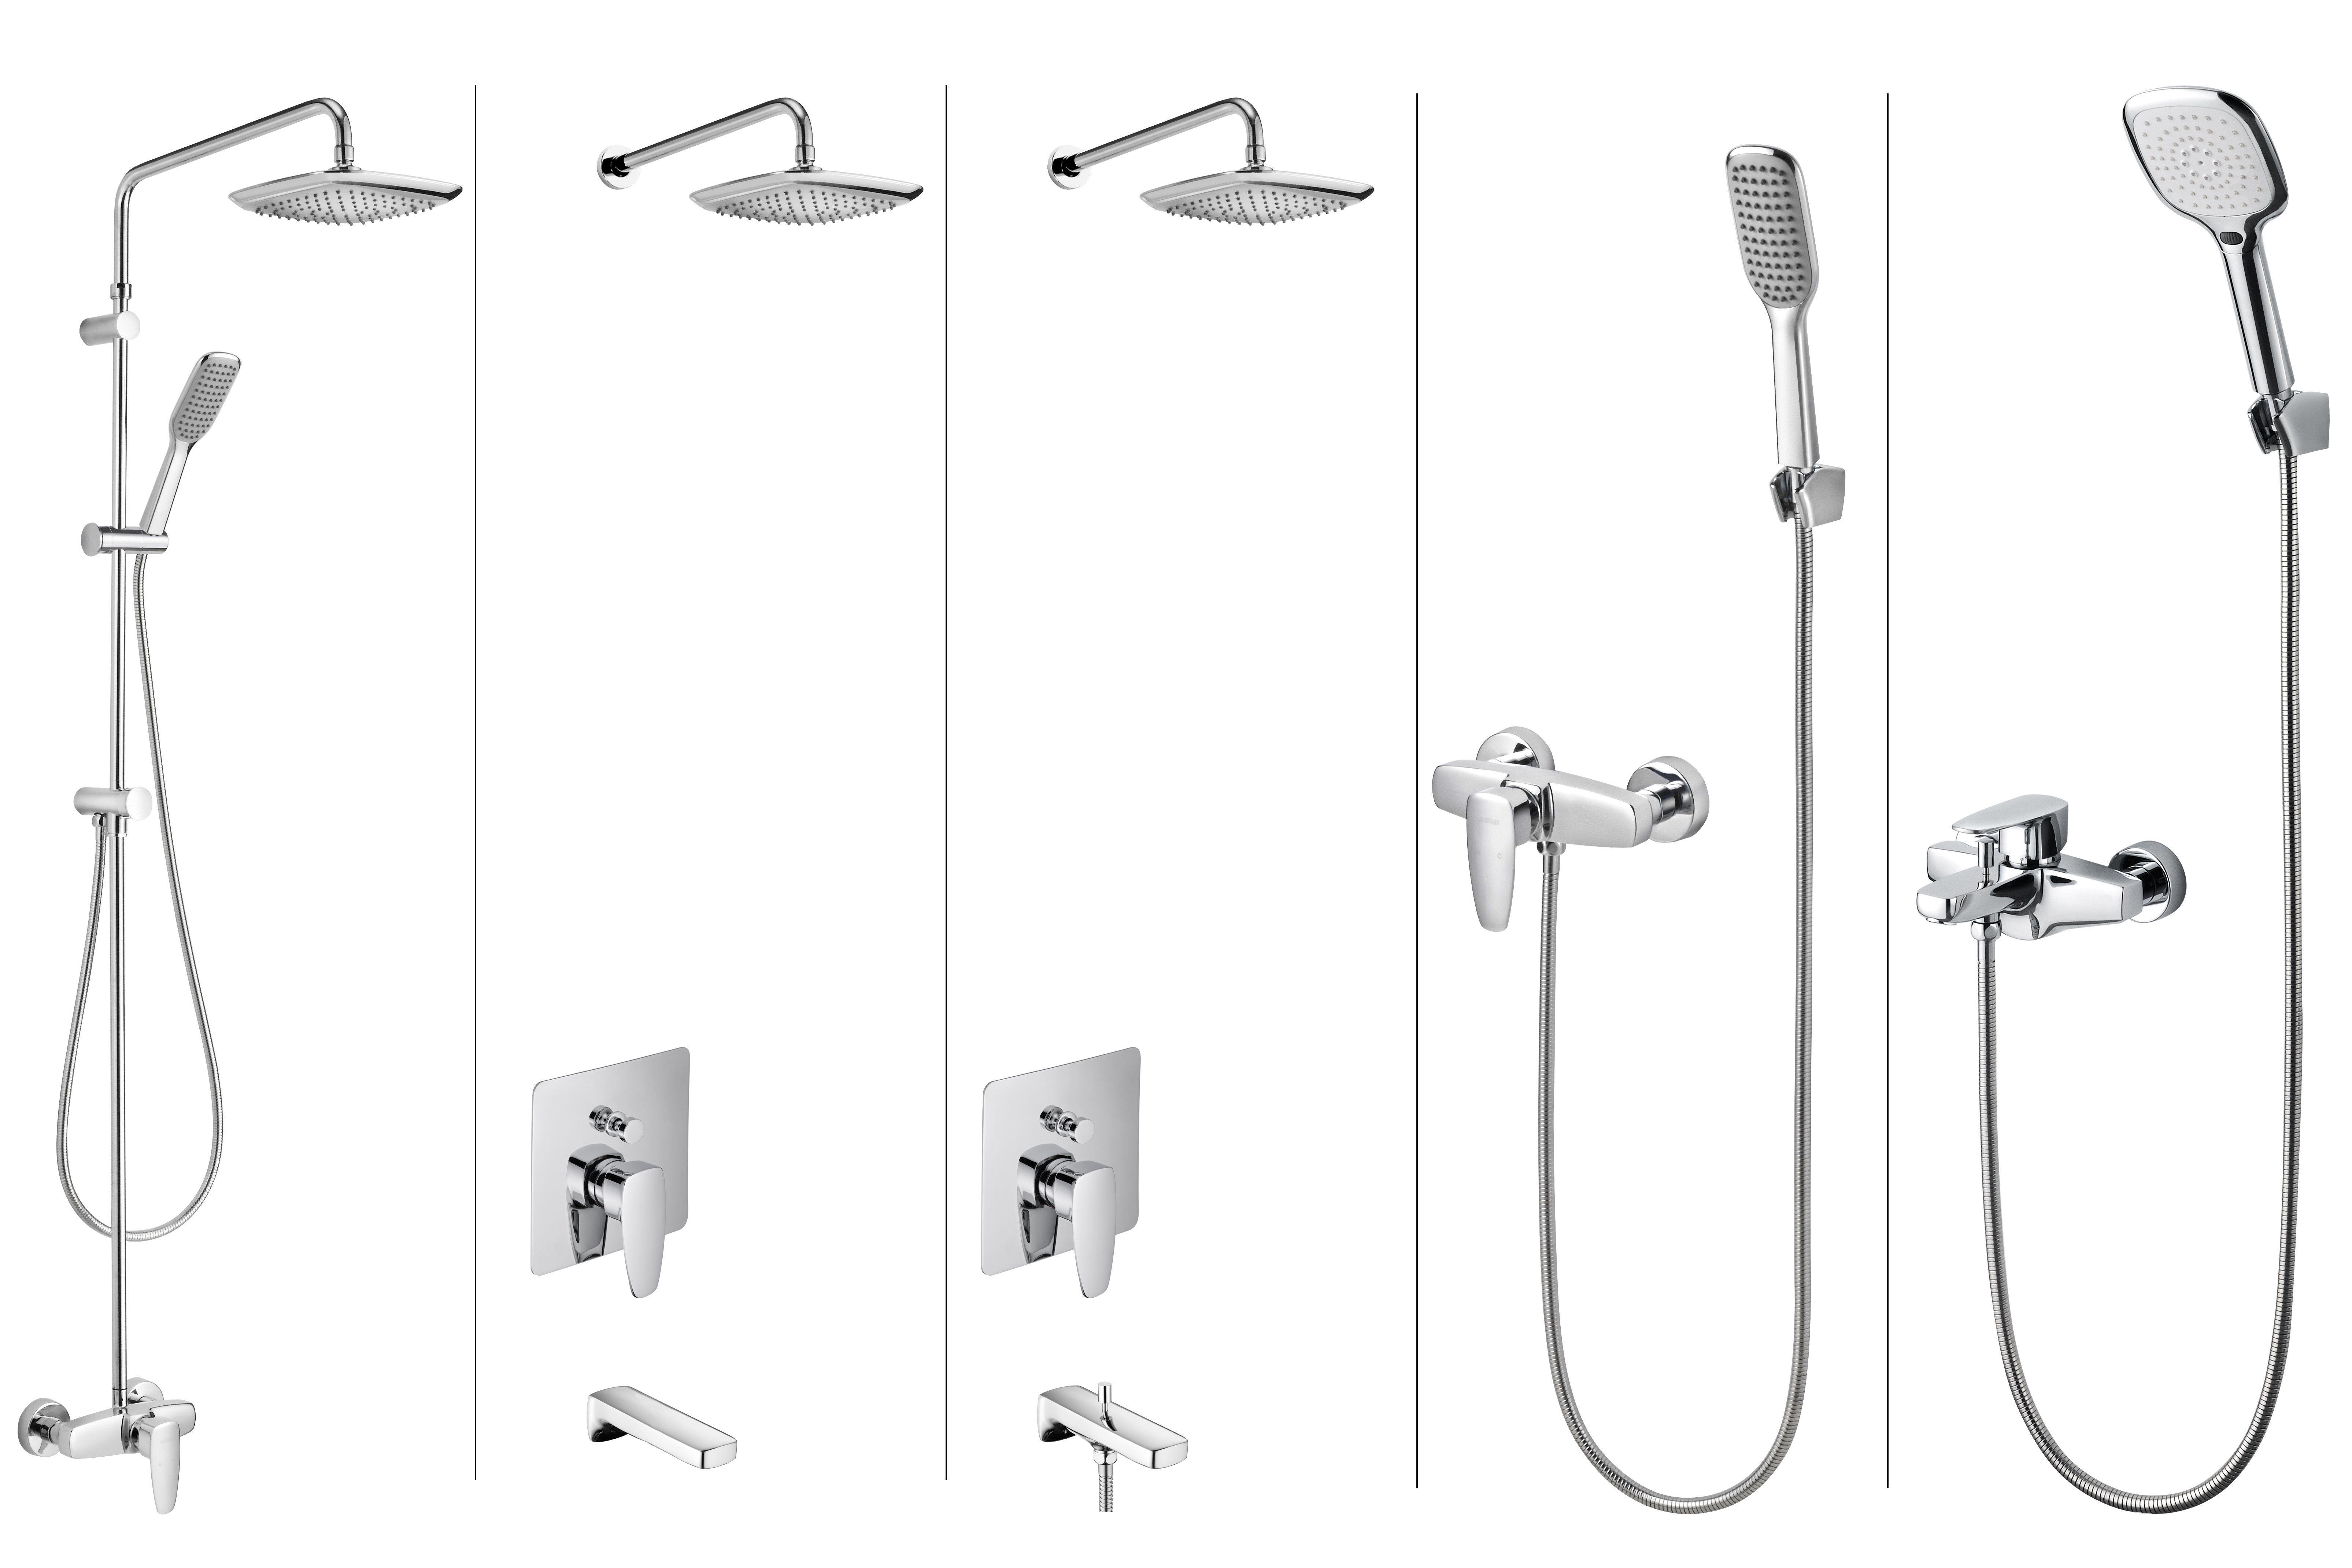 PAN2 Bath/Shower Mixer family